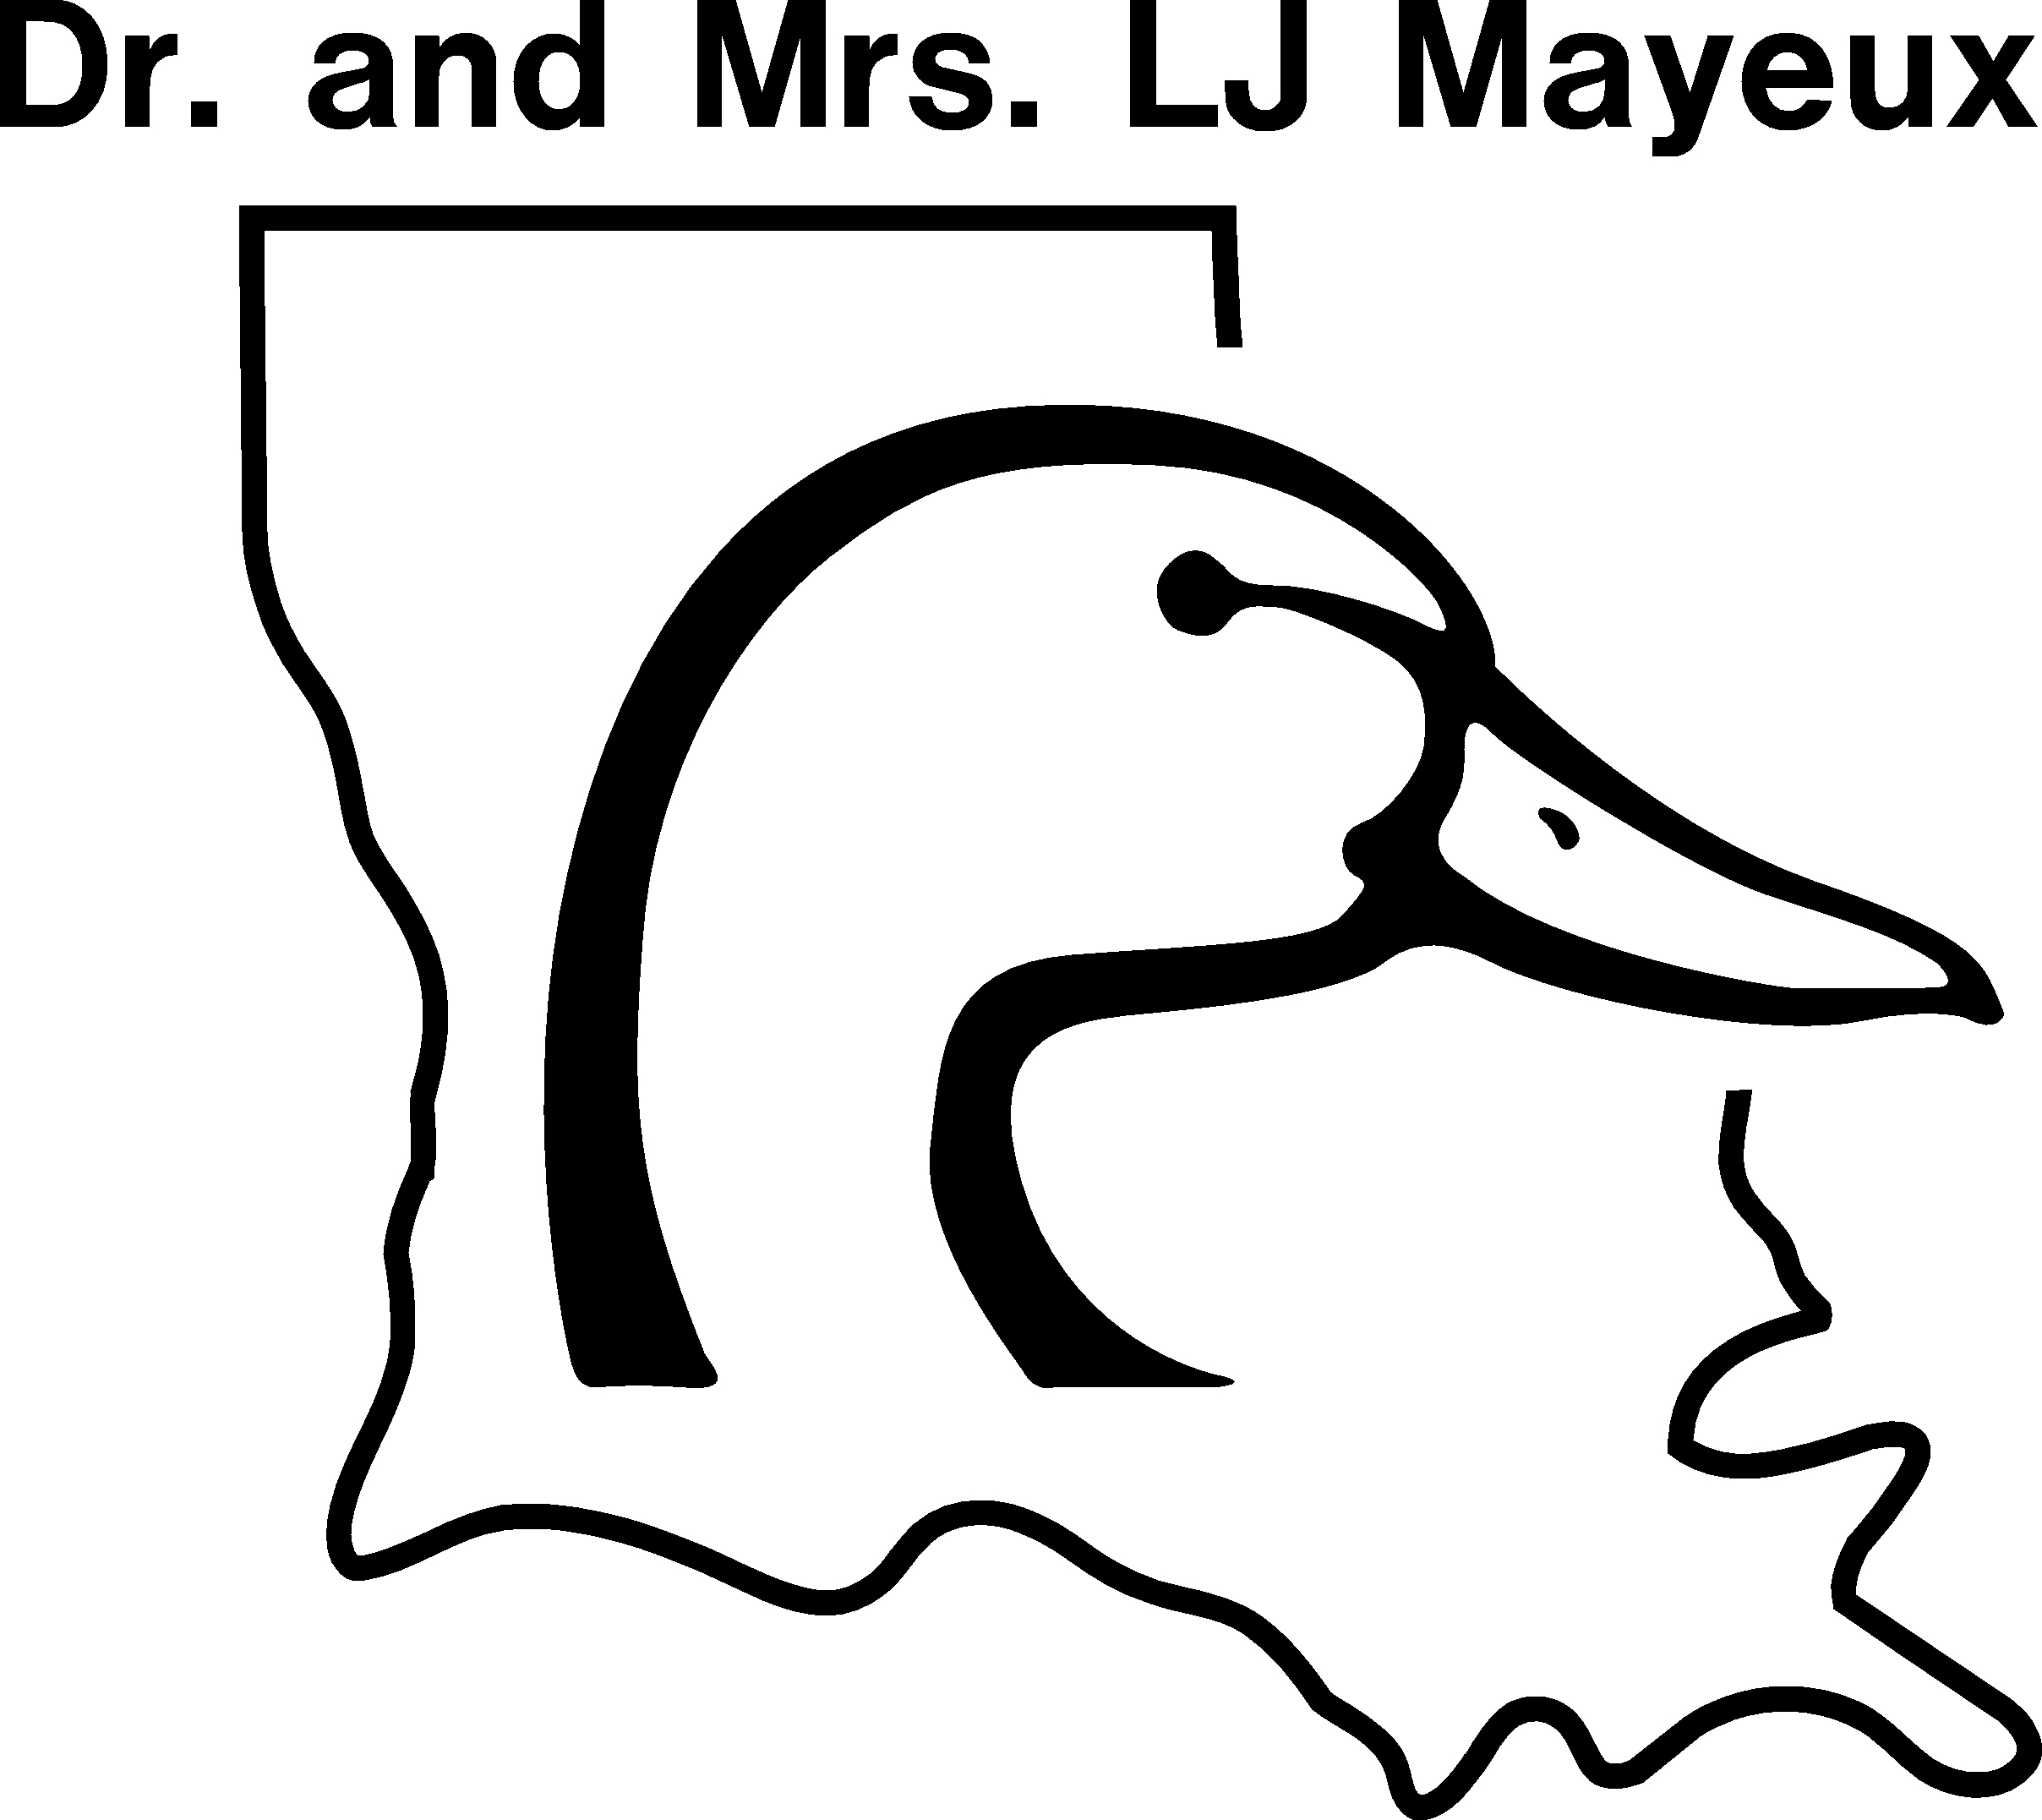 Dr. and Mrs. LJ Mayeux